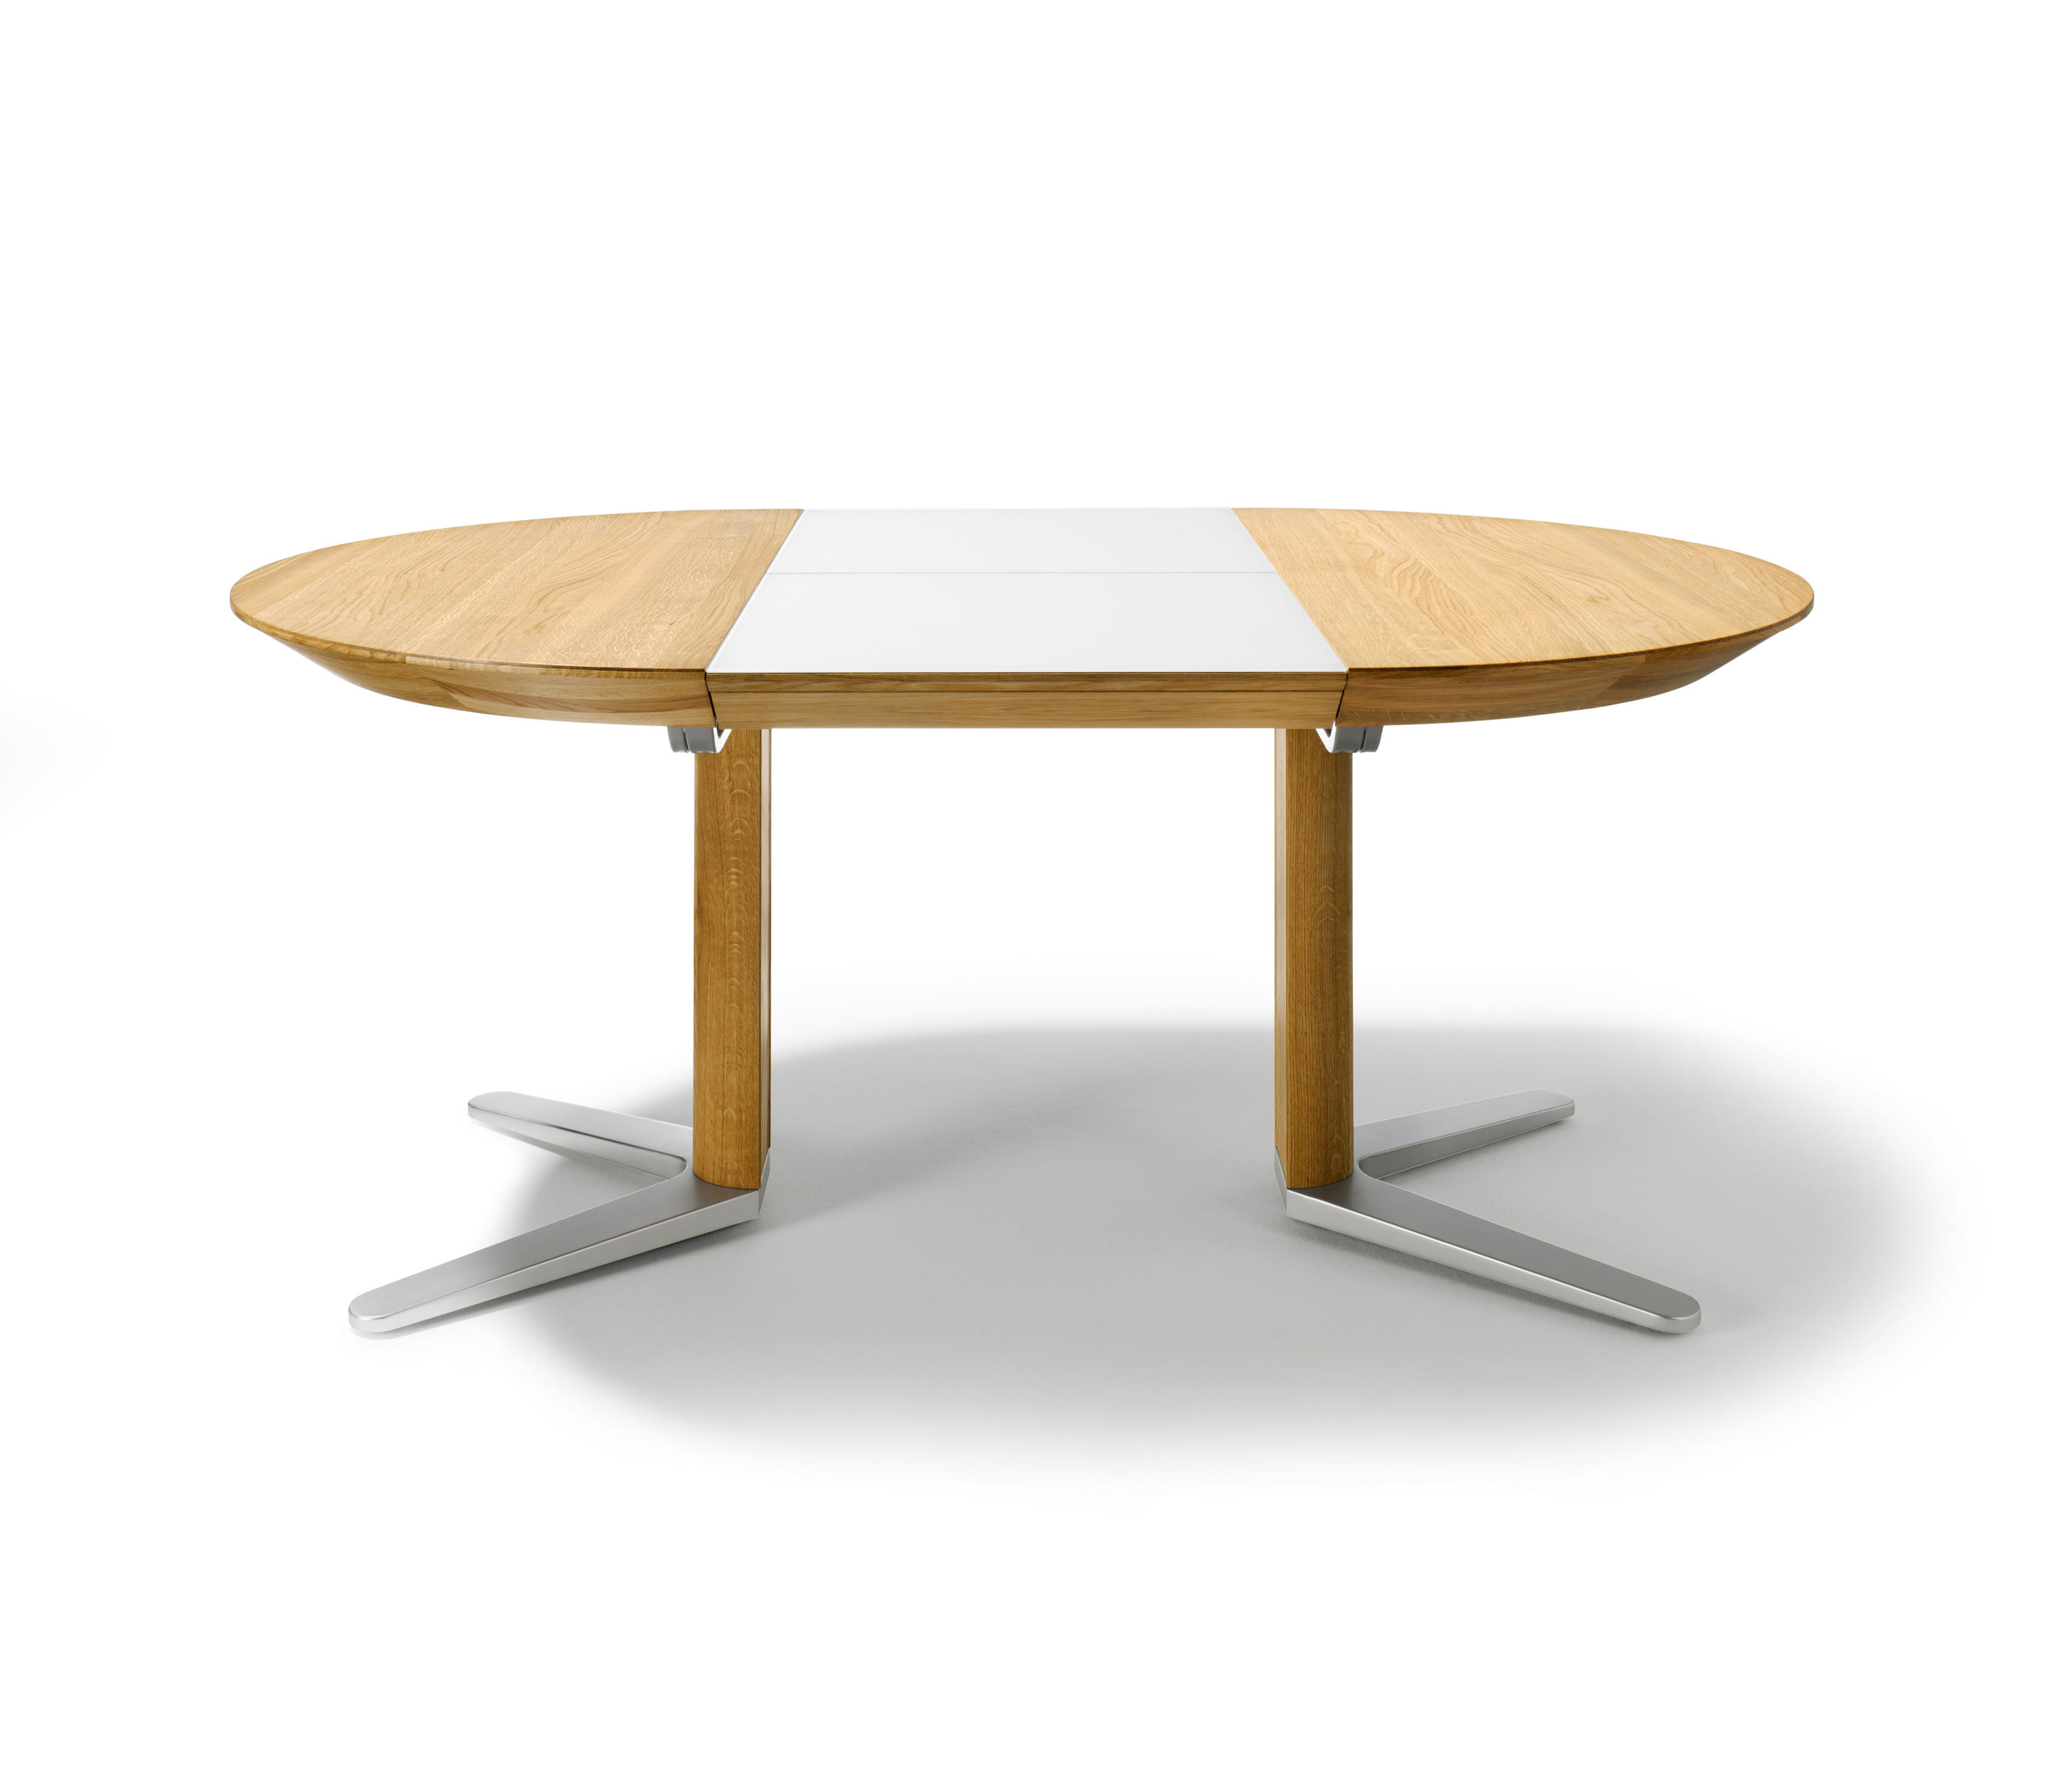 Girado Extension Table Dining Tables From Team 7 Architonic # Muebles Keu San Jeronimo